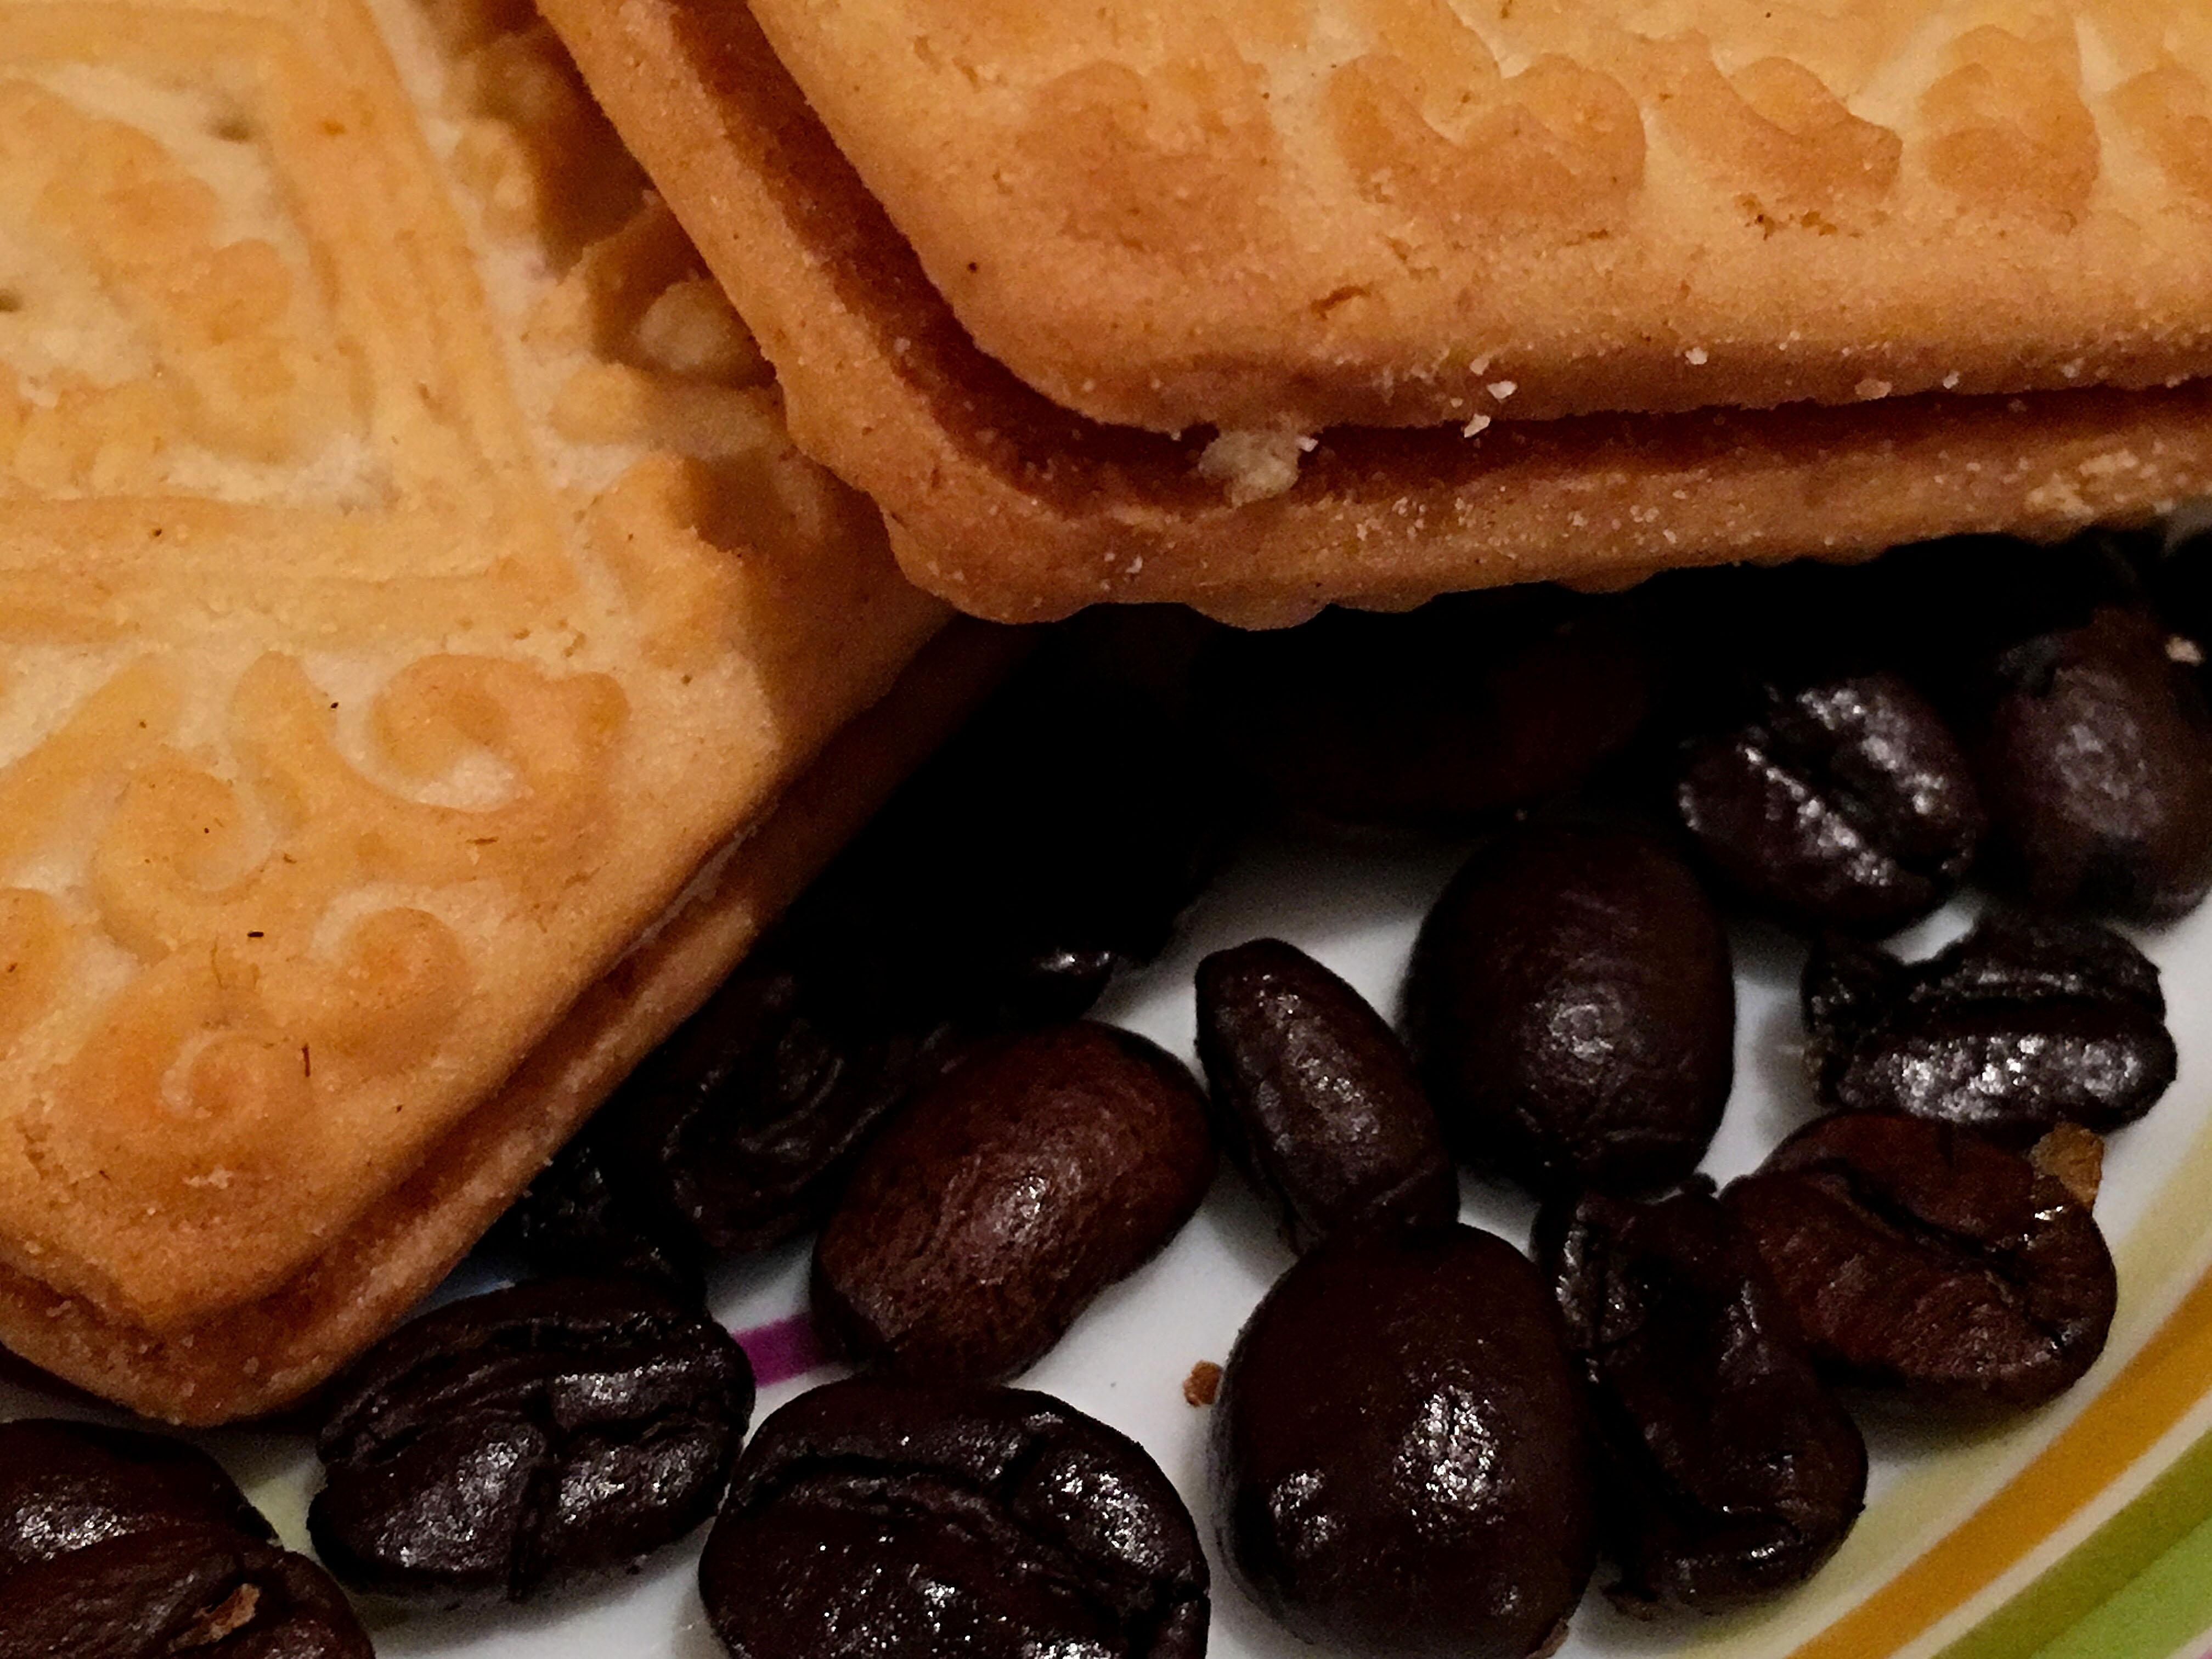 custard creams and coffee beans